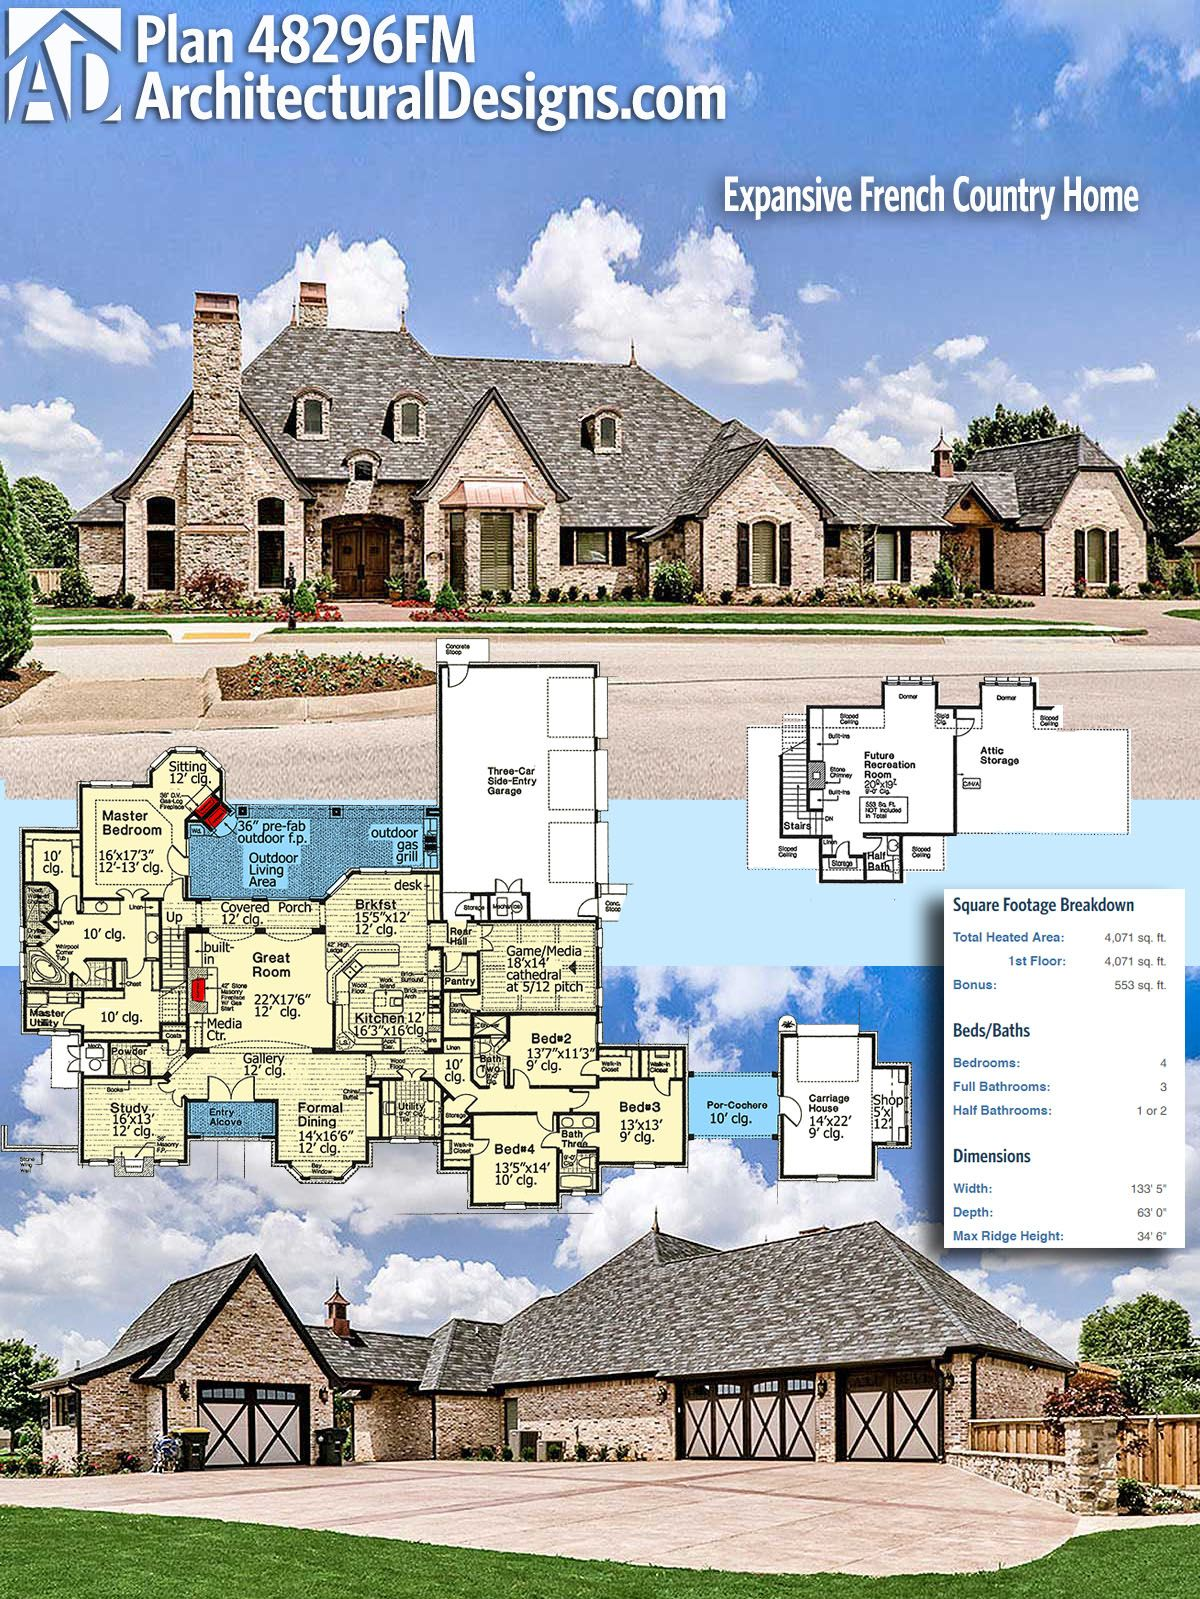 Plan 48296fm Expansive French Country Home French Country House How To Plan Architectural Design House Plans